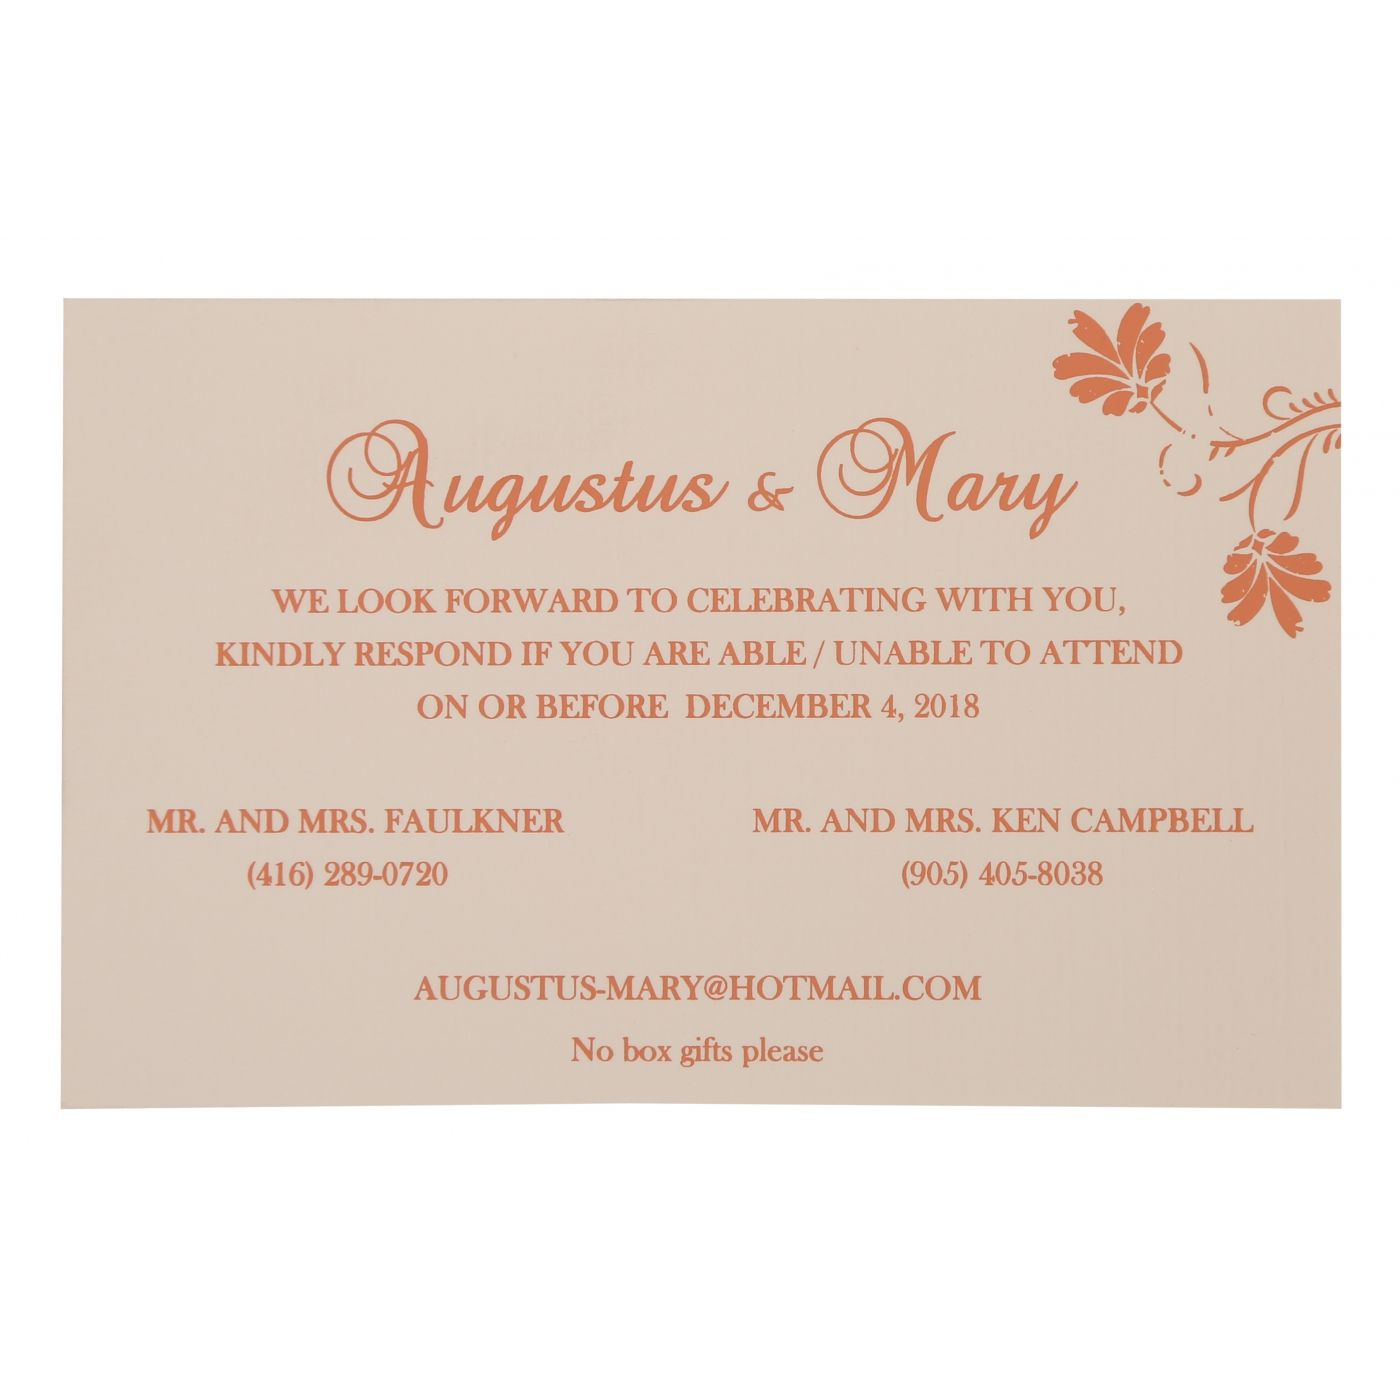 SALMON SHIMMERY SCREEN PRINTED WEDDING INVITATION : CG-803C - IndianWeddingCards